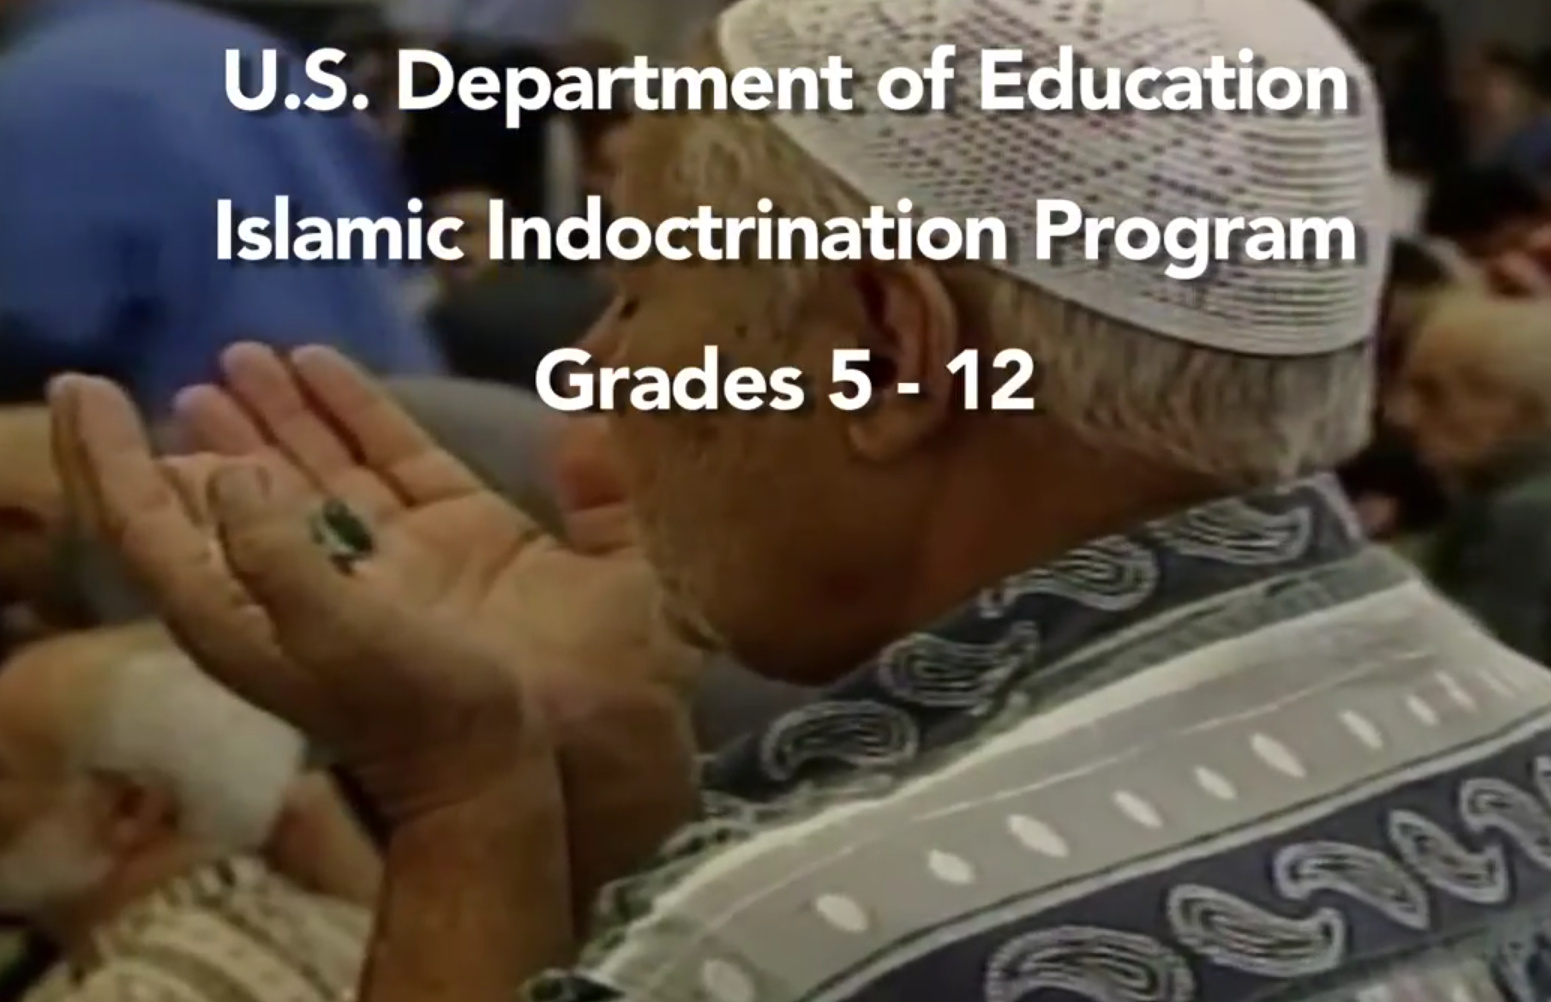 Christian Group: Department of Education 'Indoctrinating' Children Into Islamic Beliefs